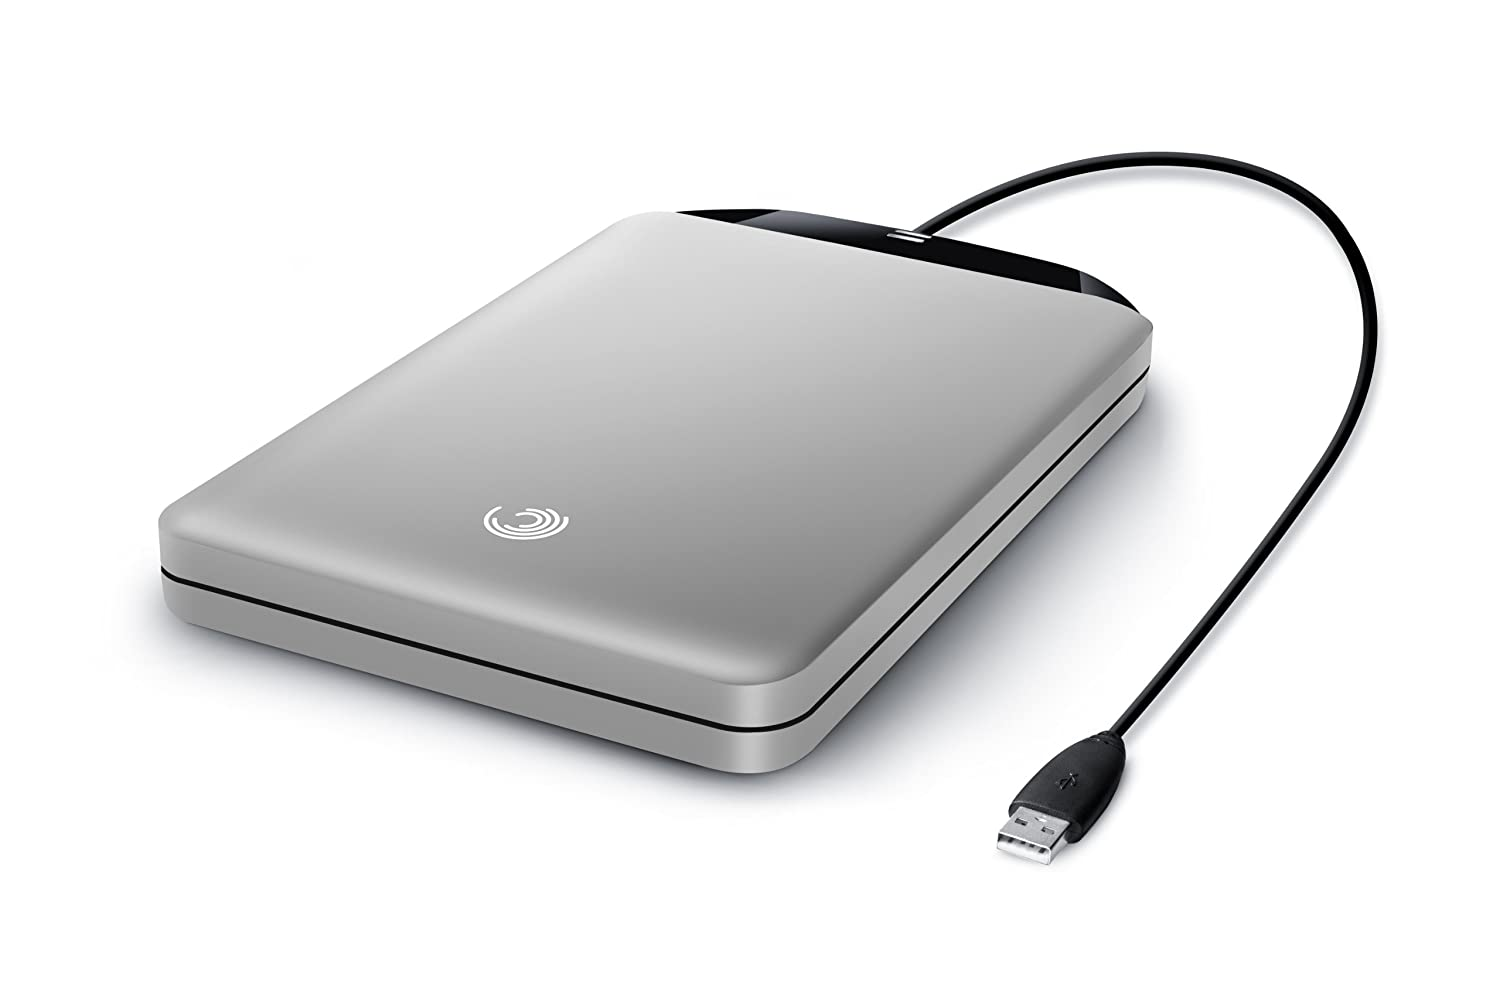 8 reasons why your external hard drive may corrupt